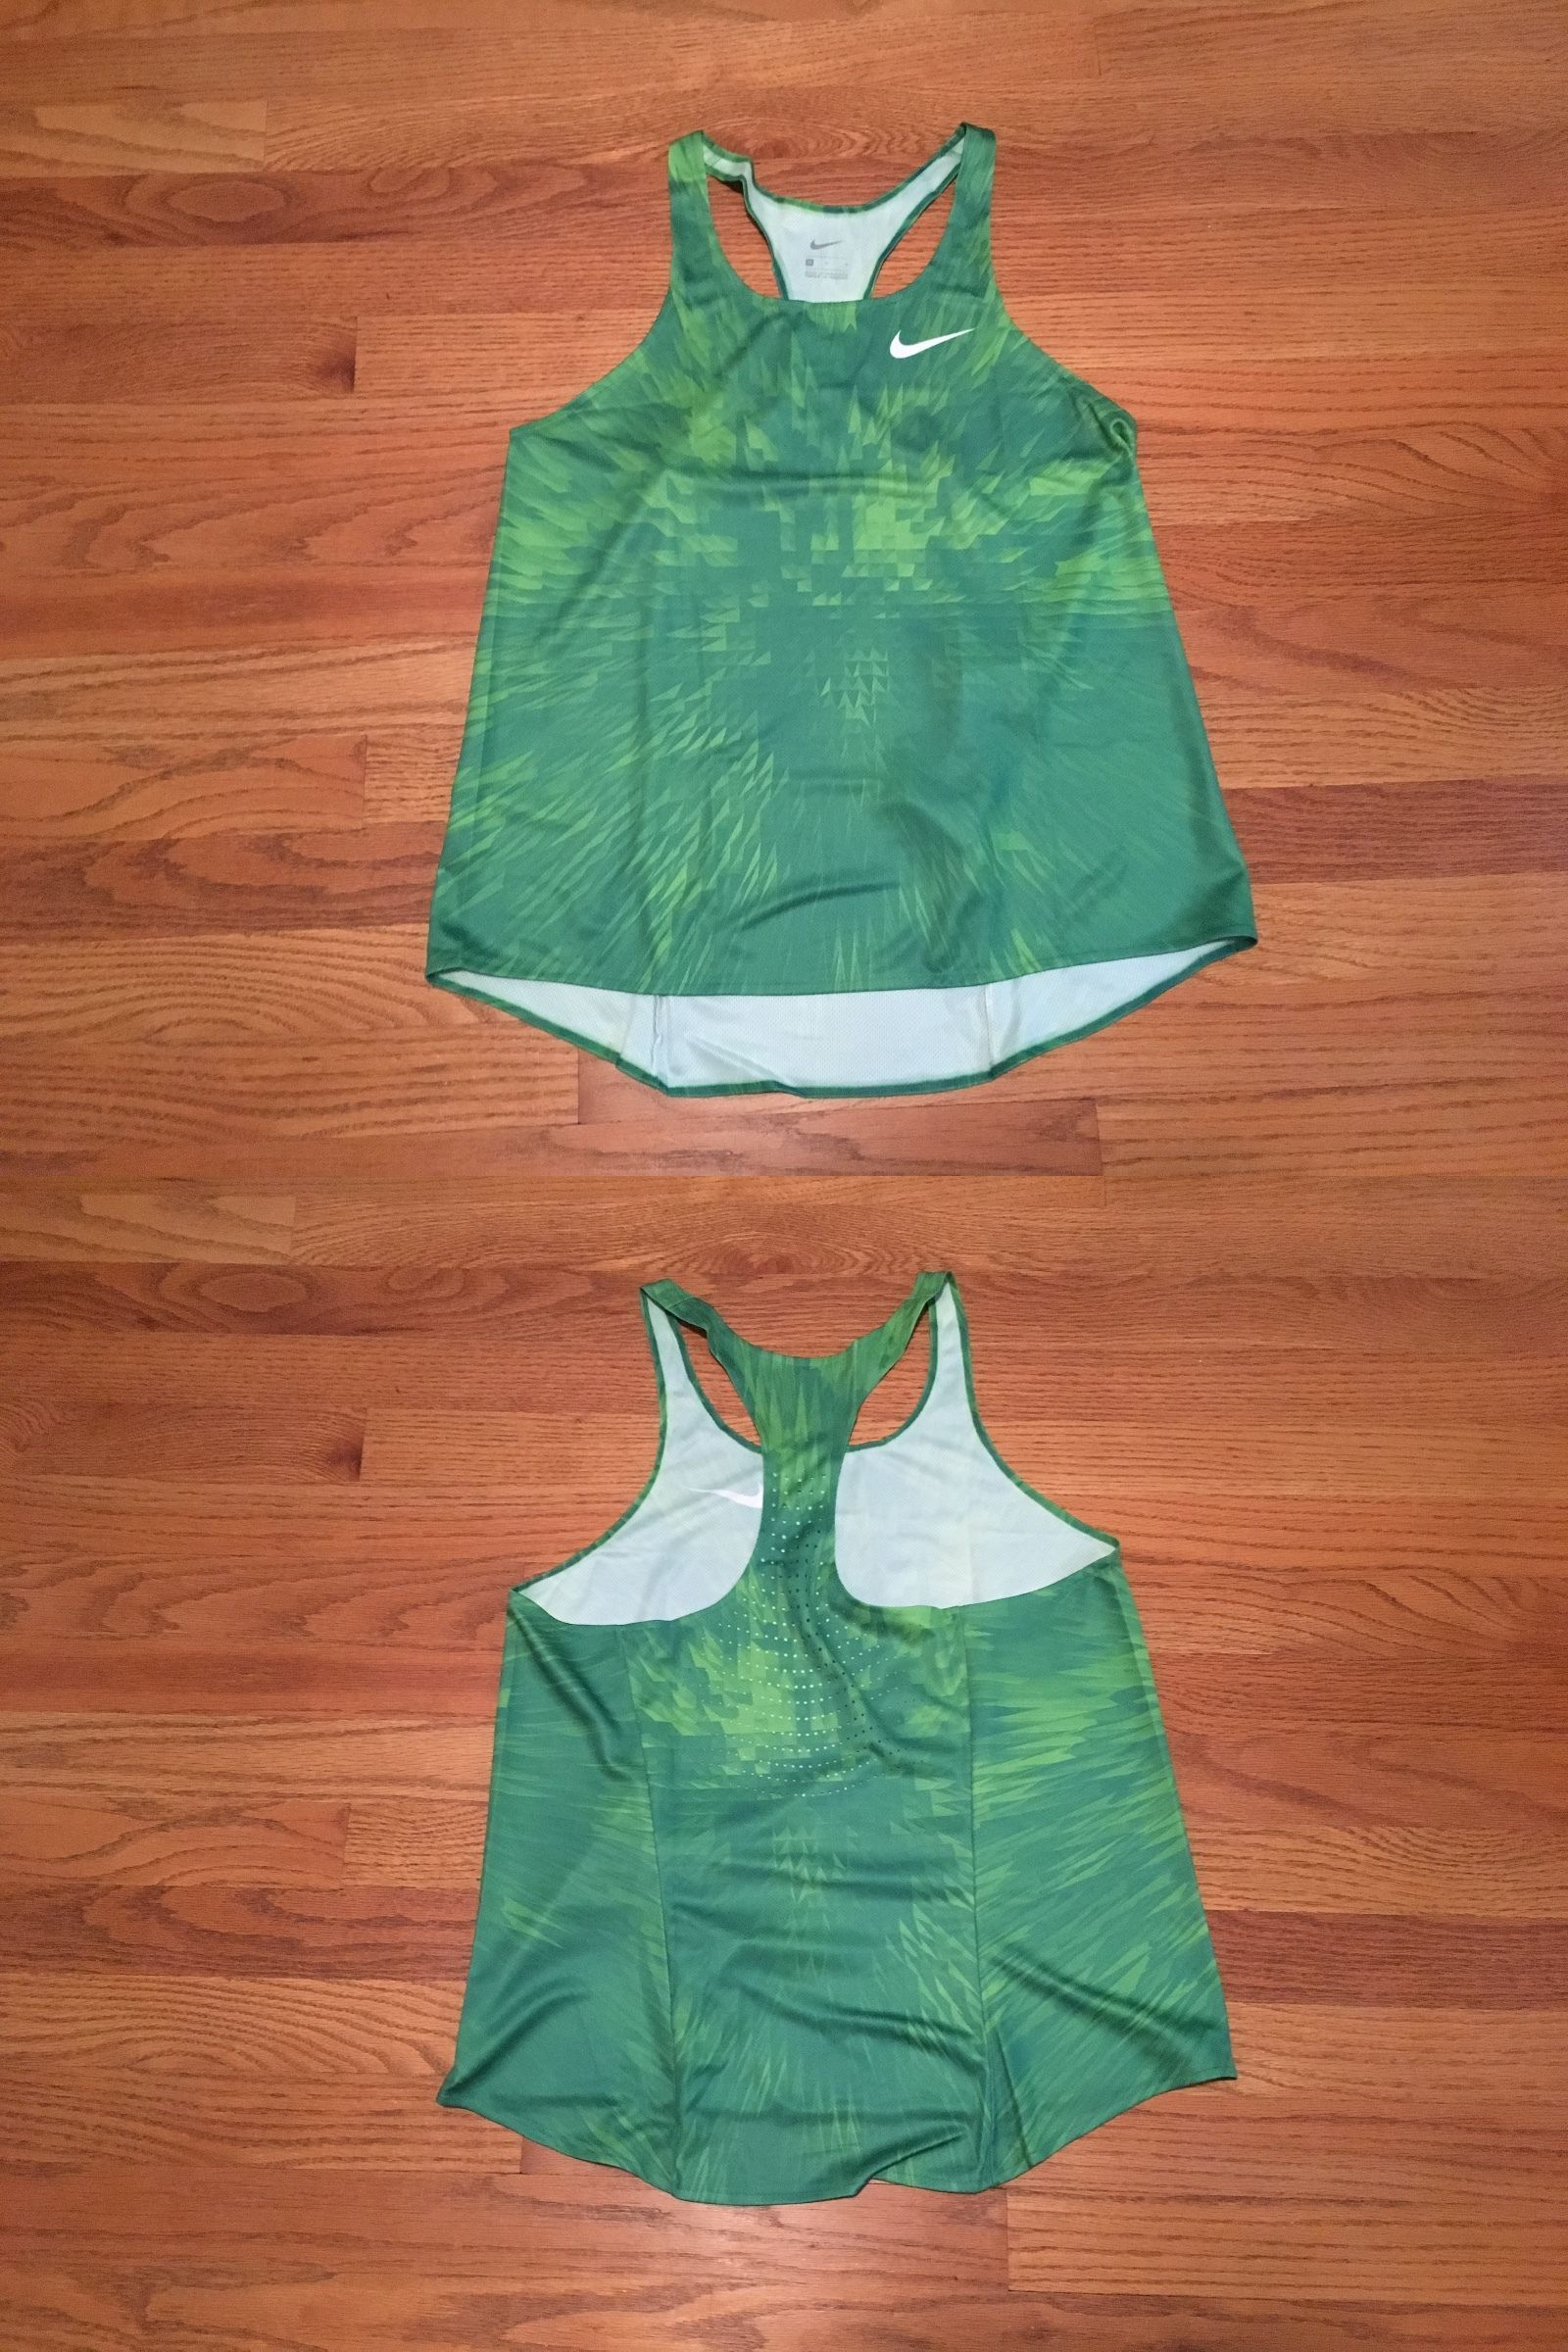 9d0a5b04d7a2 Women Athletics  New Nike Women S M Digital Race Day Elite Running Singlet  Green -